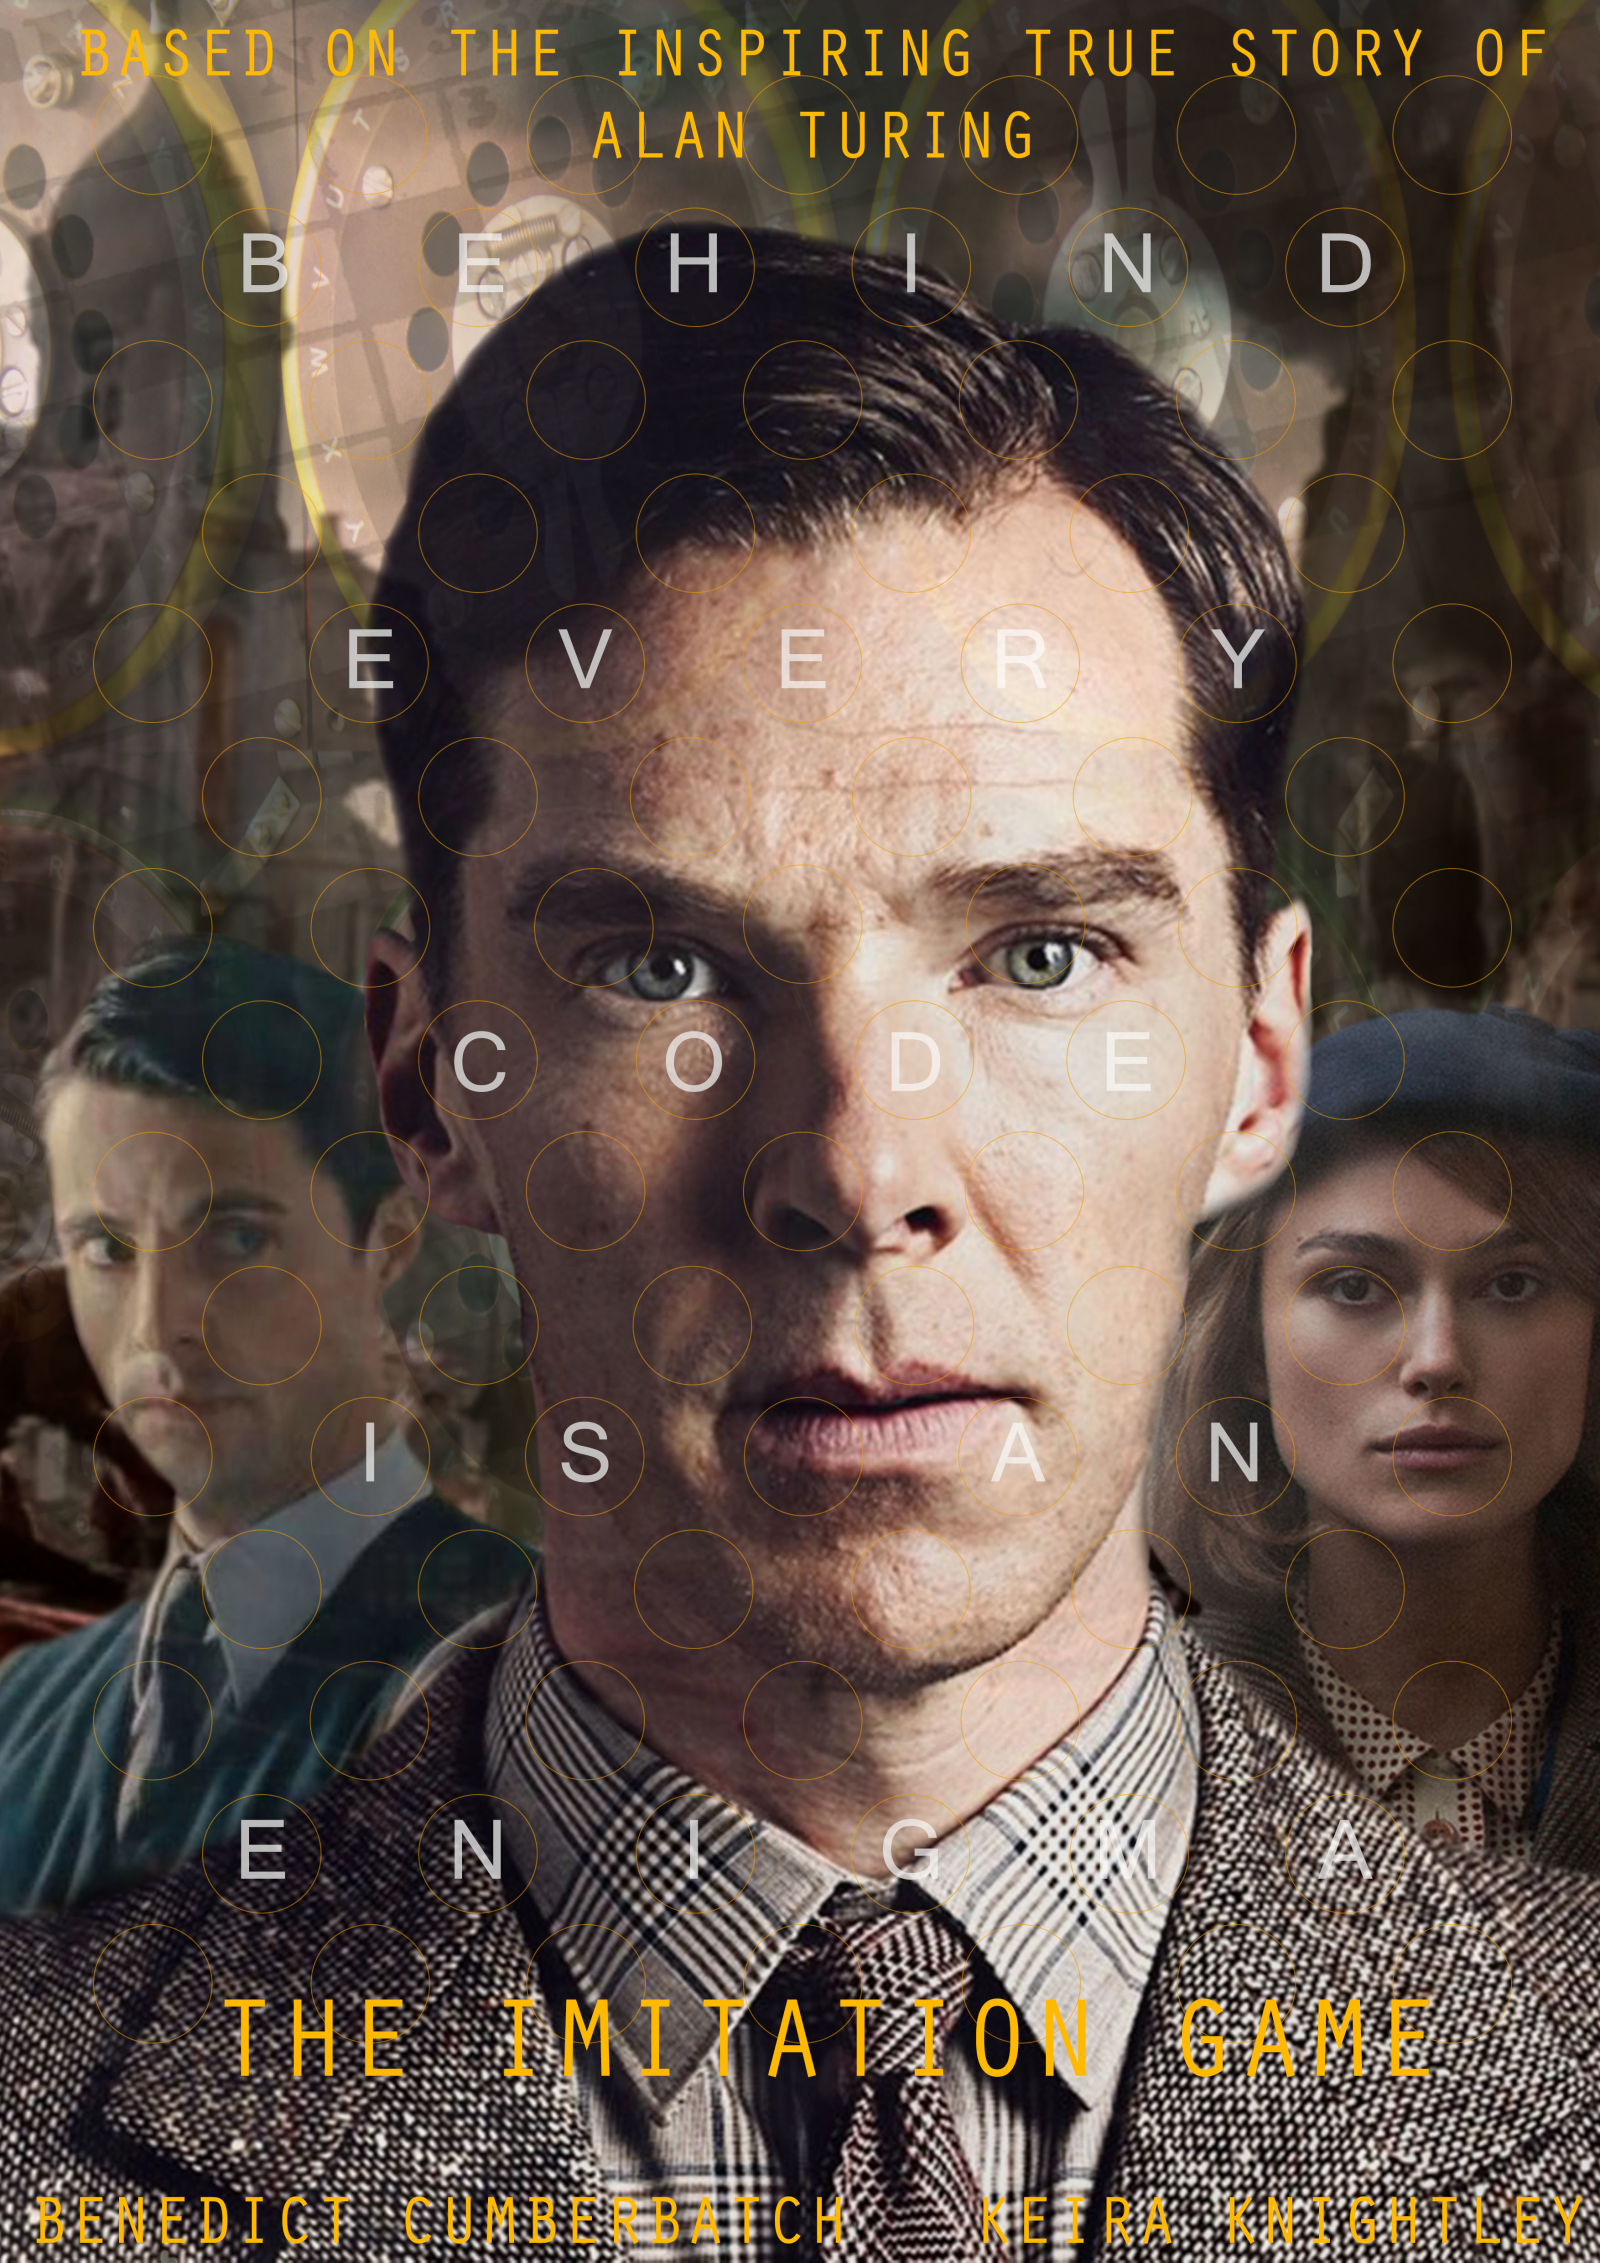 imitation game Perhaps not quite as dashing as the actor matthew goode who plays him in the imitation game, alexander nevertheless had a reputation for urbanity and charm.